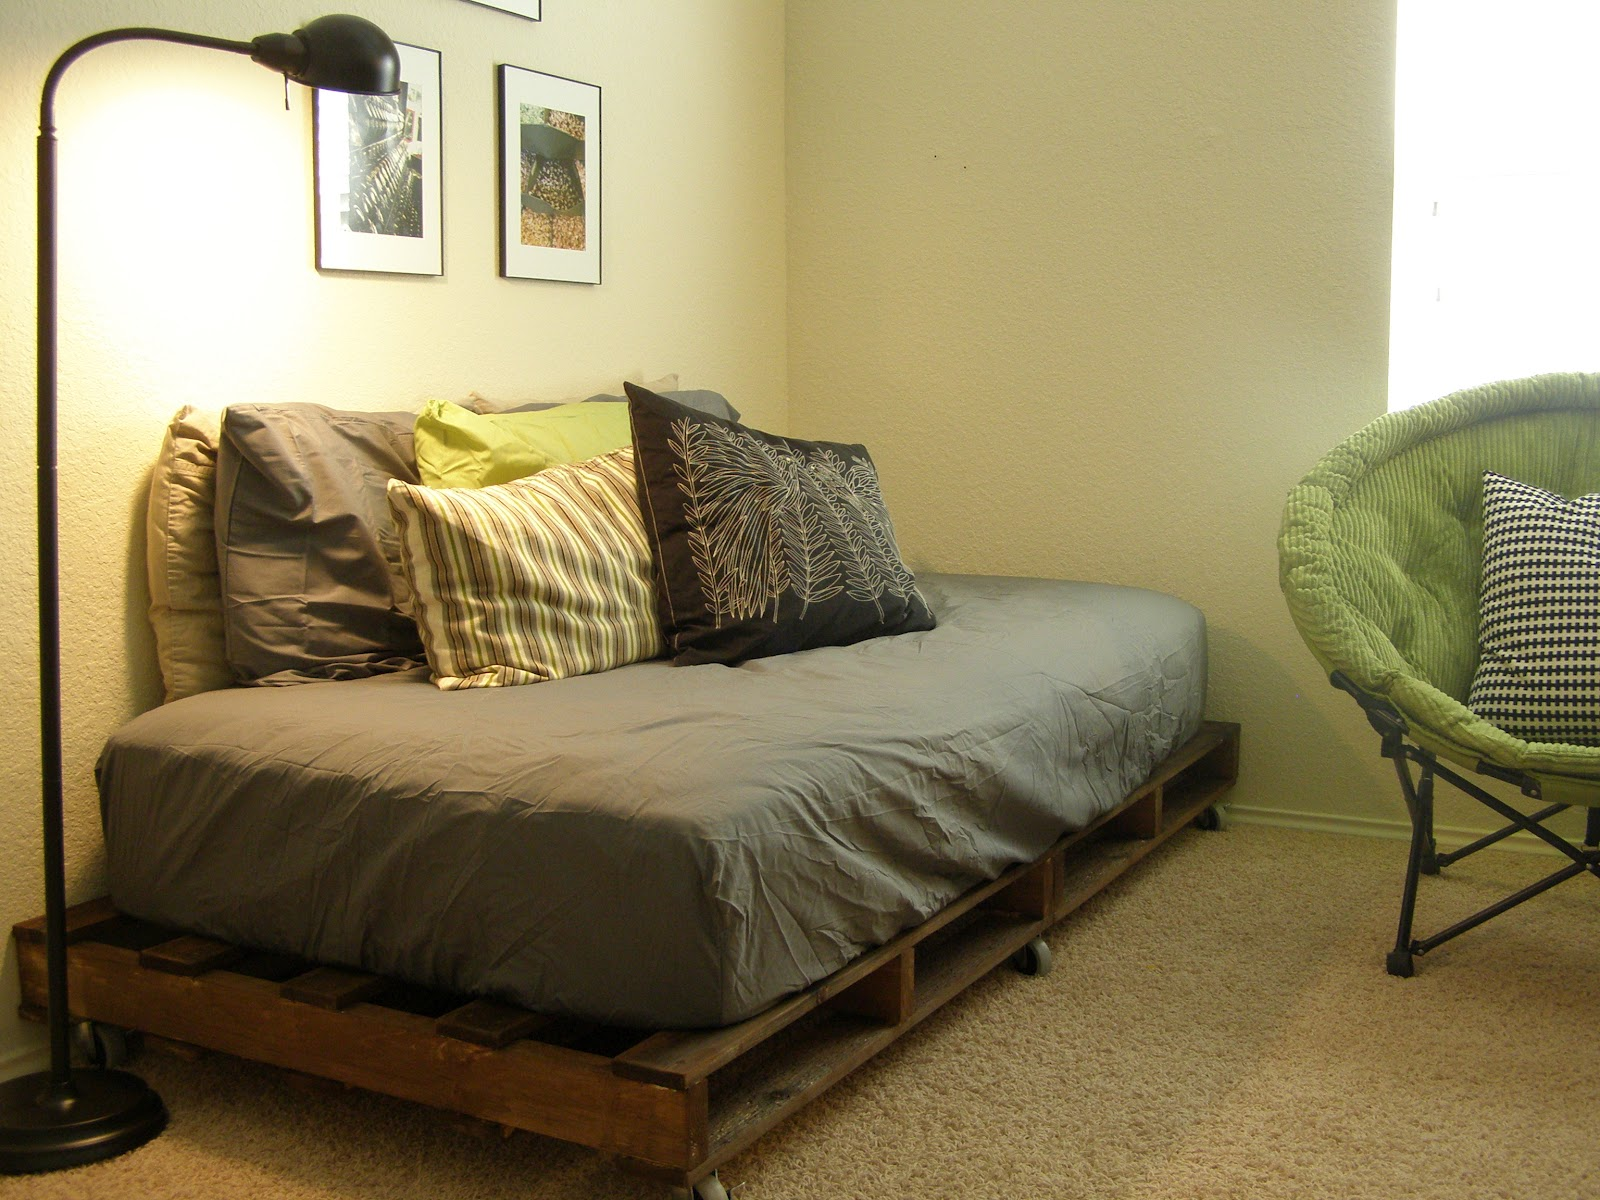 20 brilliant wooden pallet bed frame ideas for your house on Bed Pallet Design  id=48948